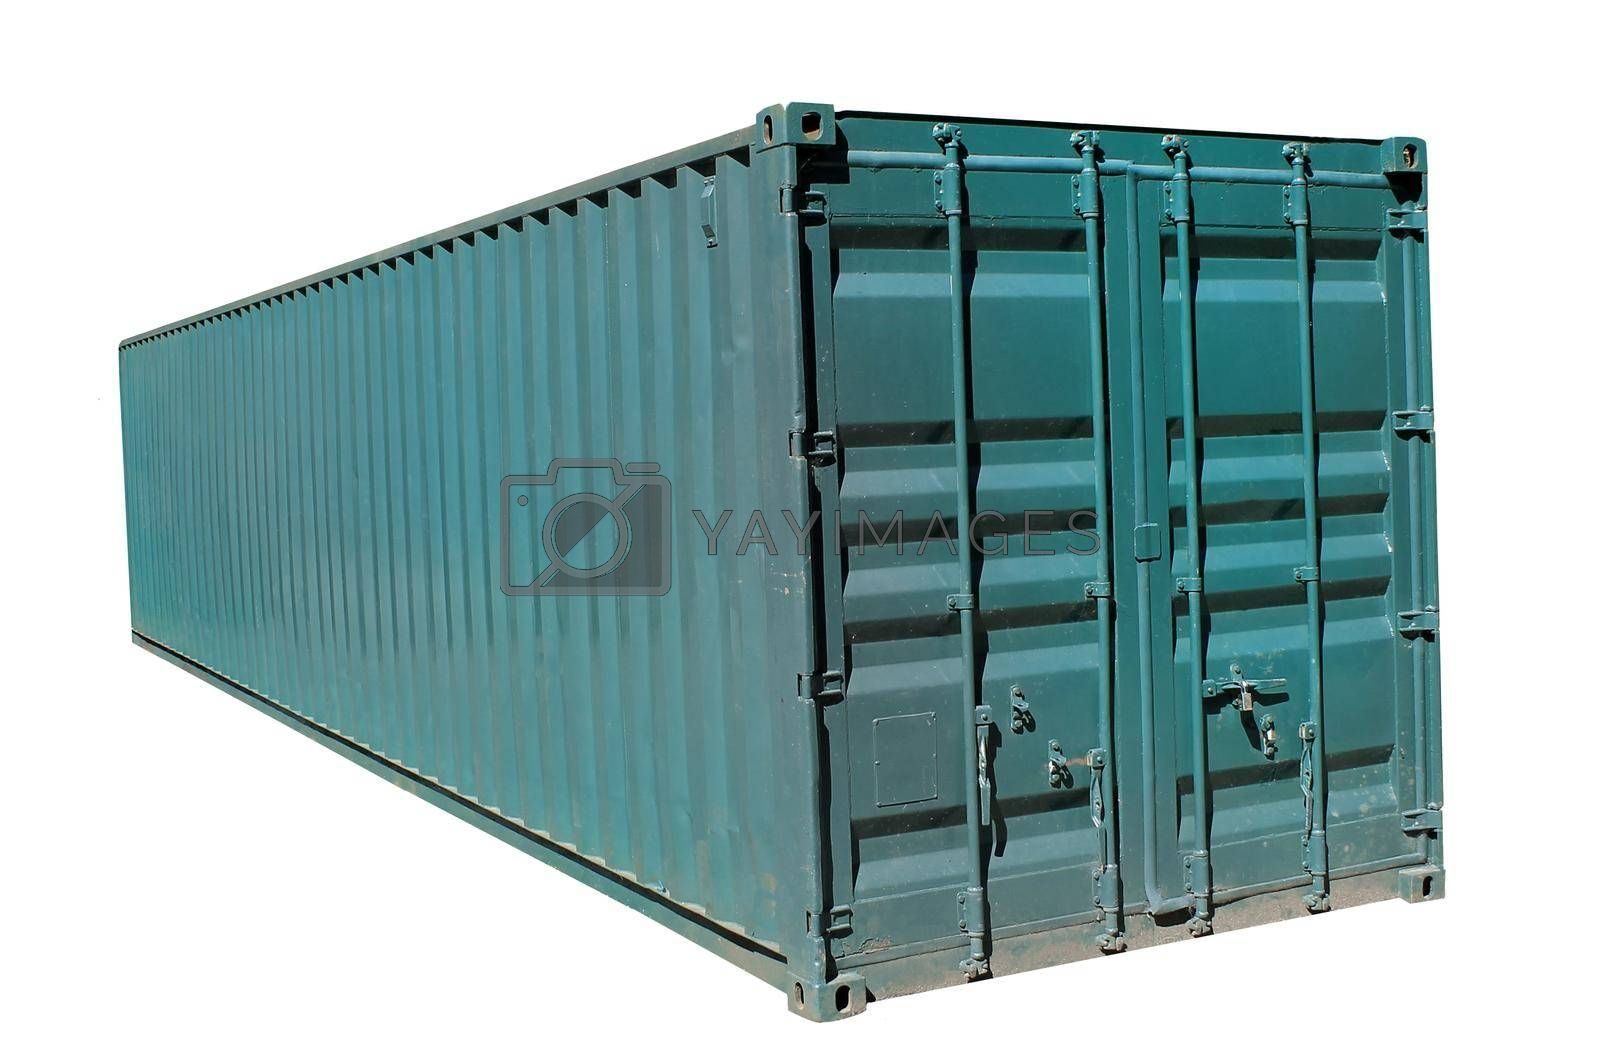 Royalty free image of Shipping container by speedfighter